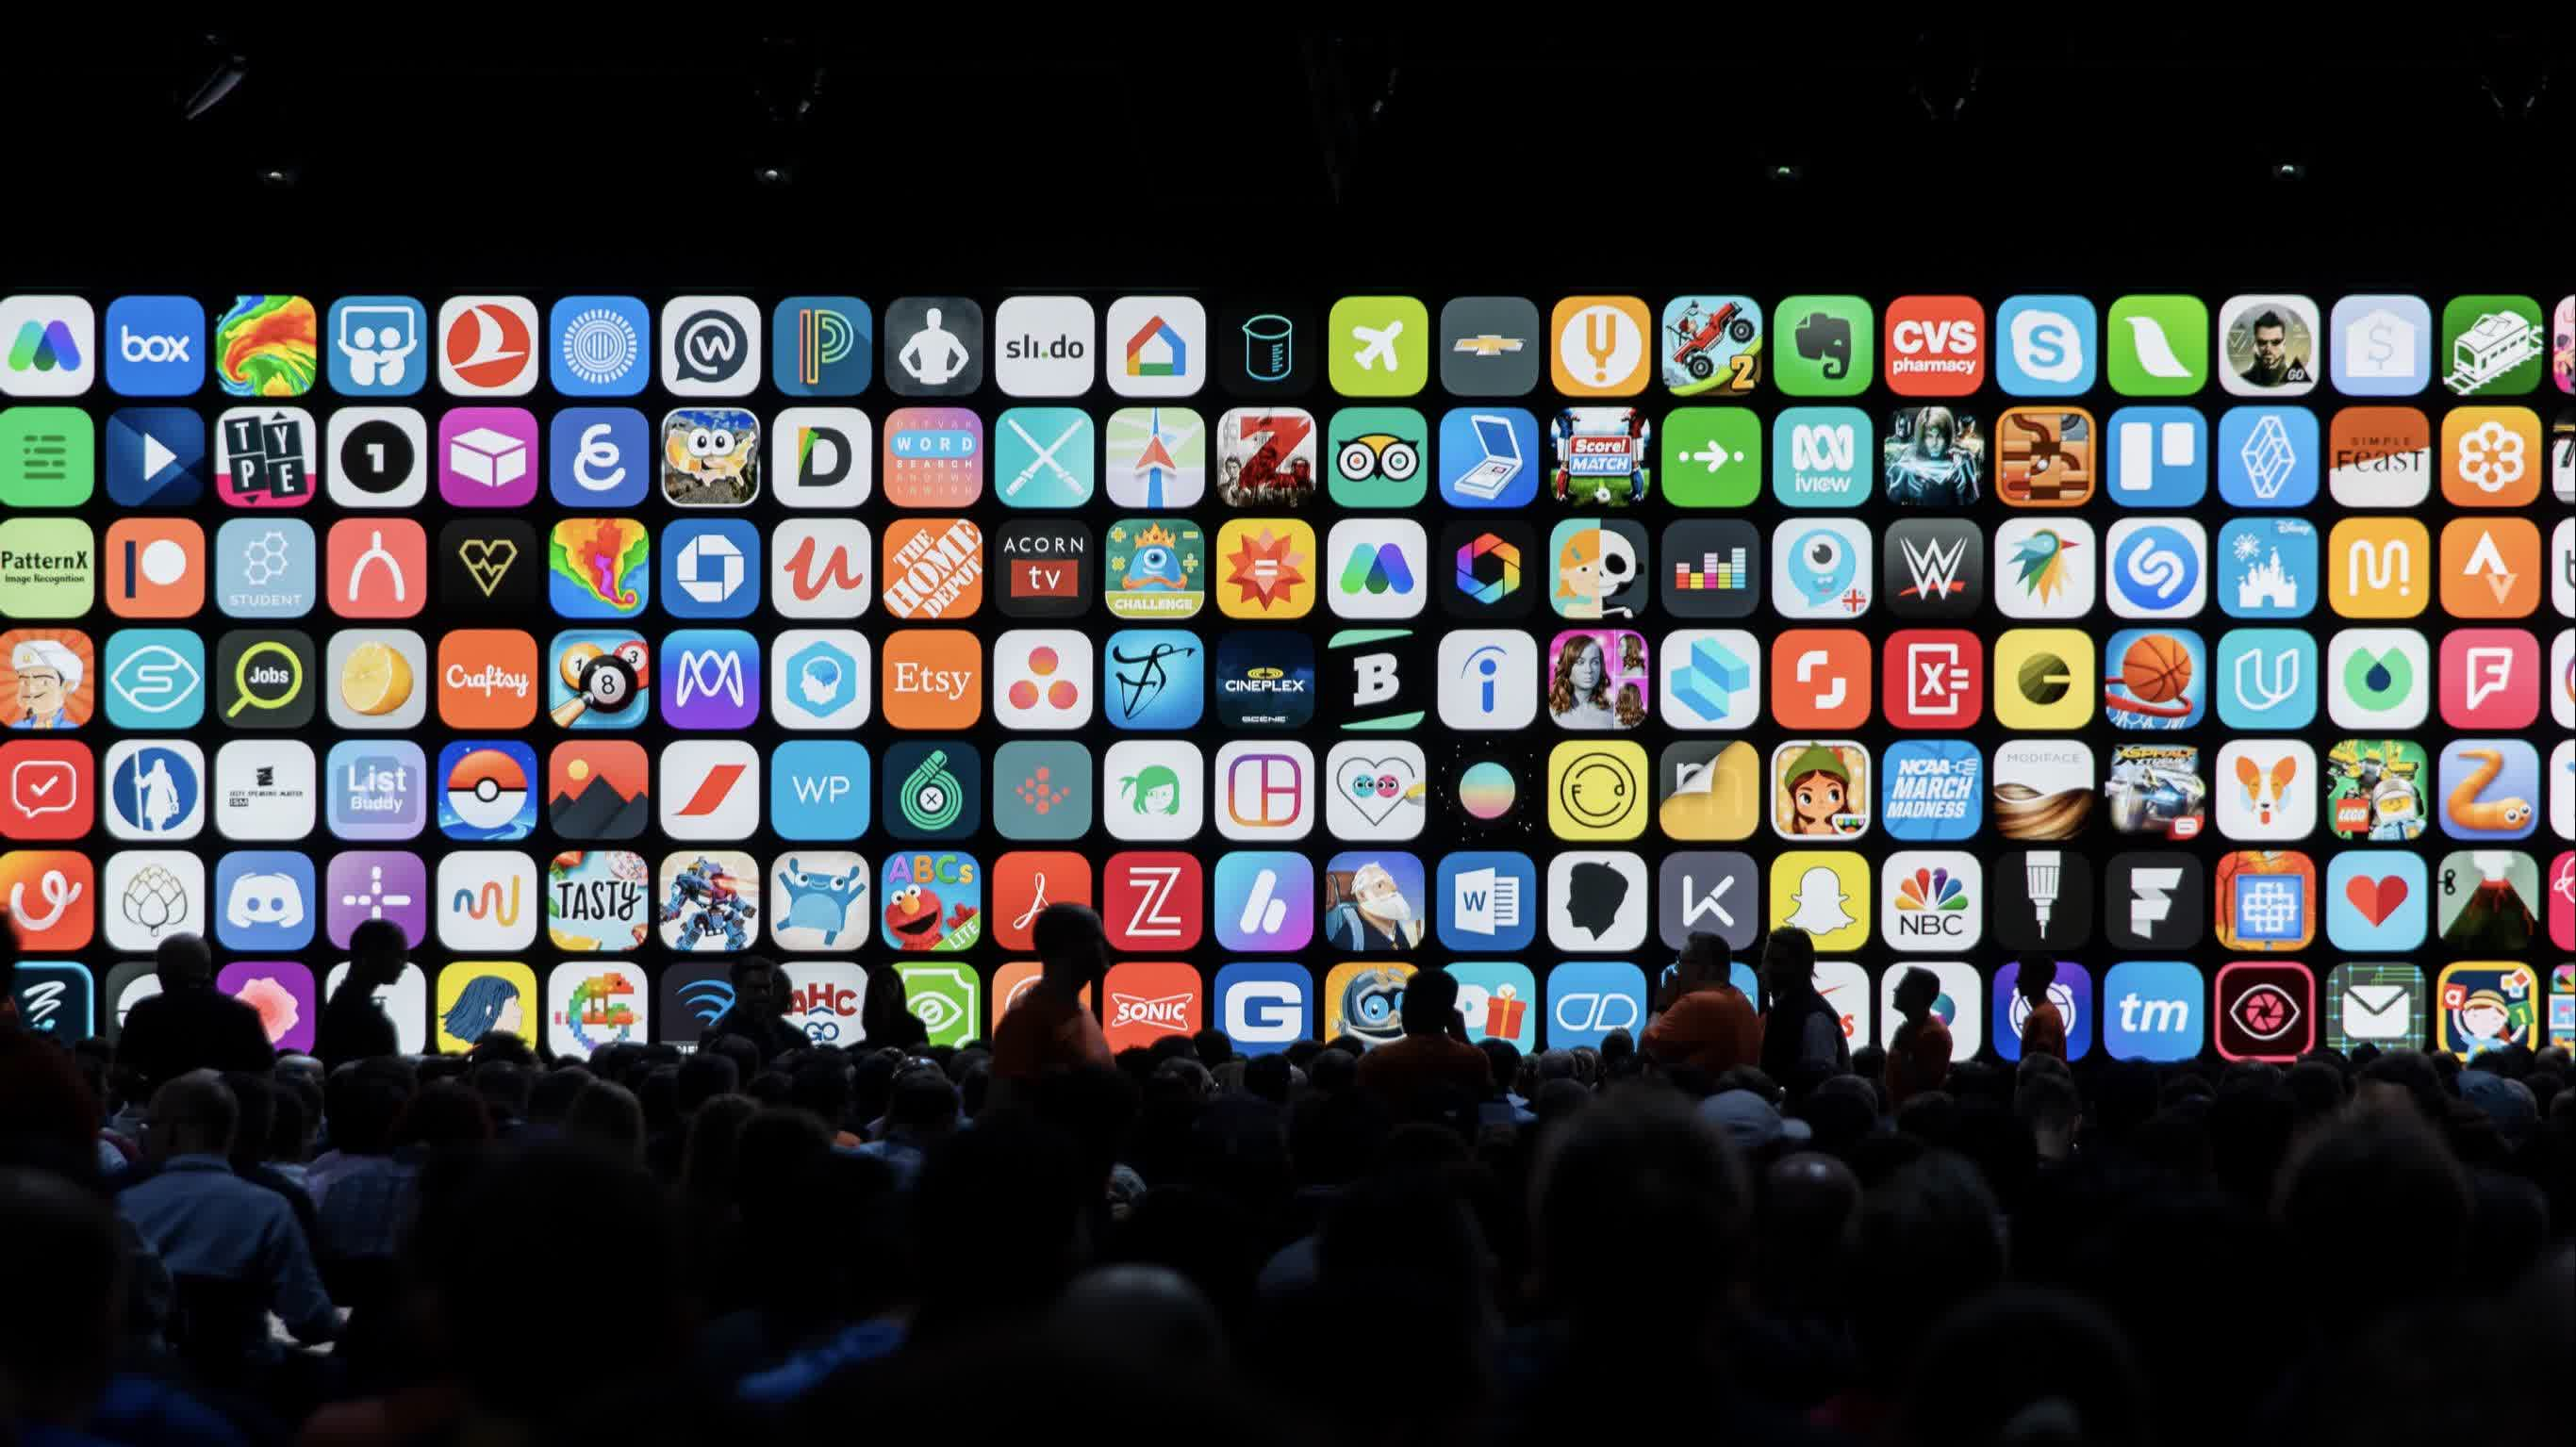 Apple will make changes to App Store rules to settle class-action lawsuit